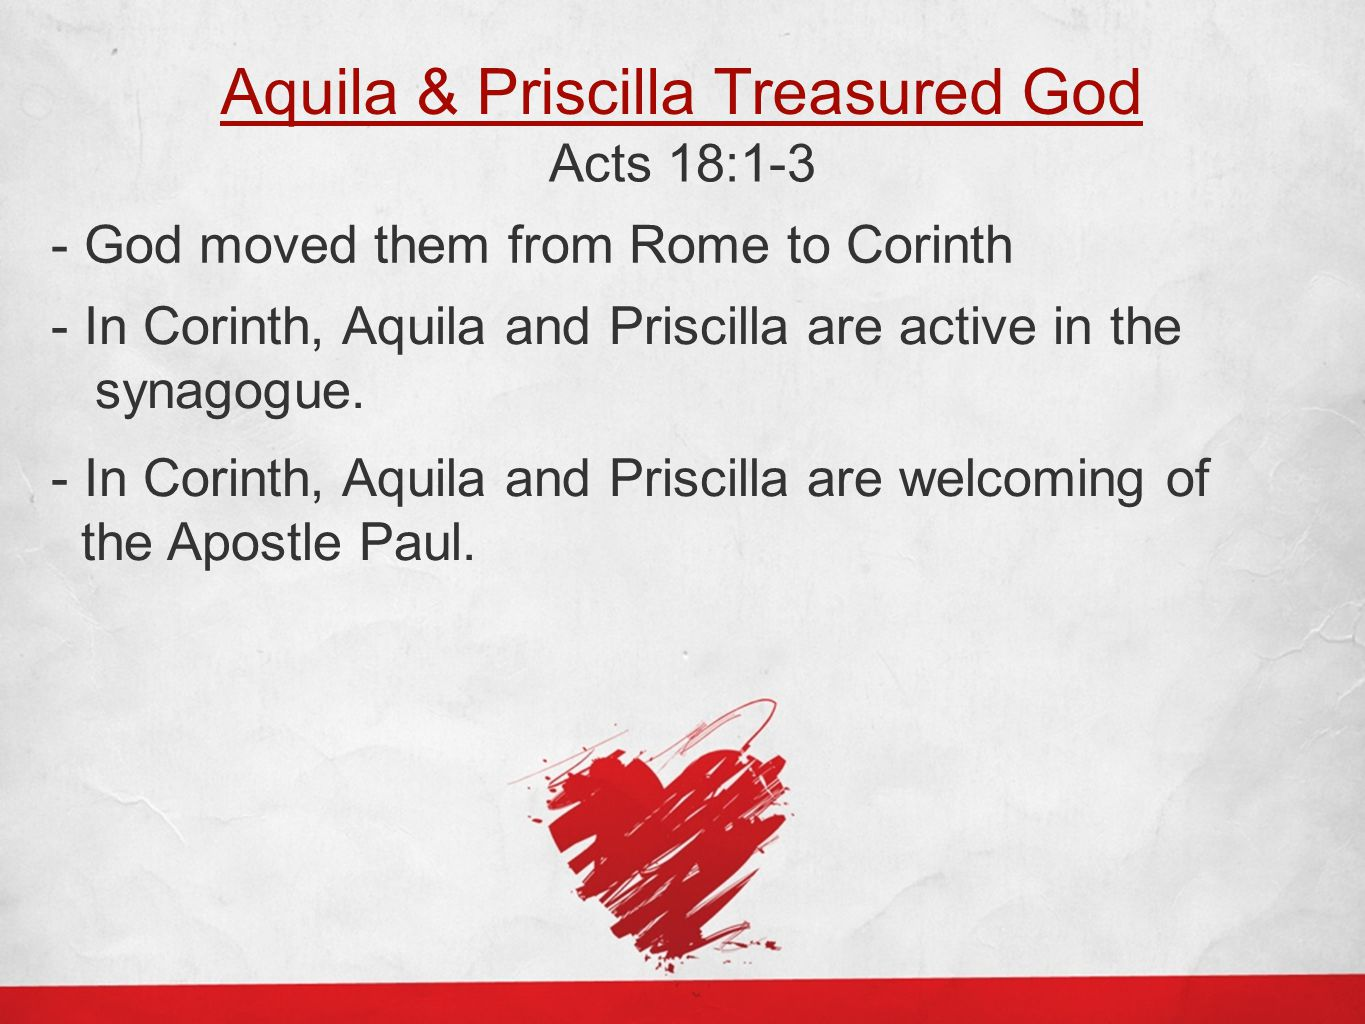 Aquila & Priscilla Treasured God Acts 18:1-3 - God moved them from Rome to Corinth - In Corinth, Aquila and Priscilla are active in the synagogue.